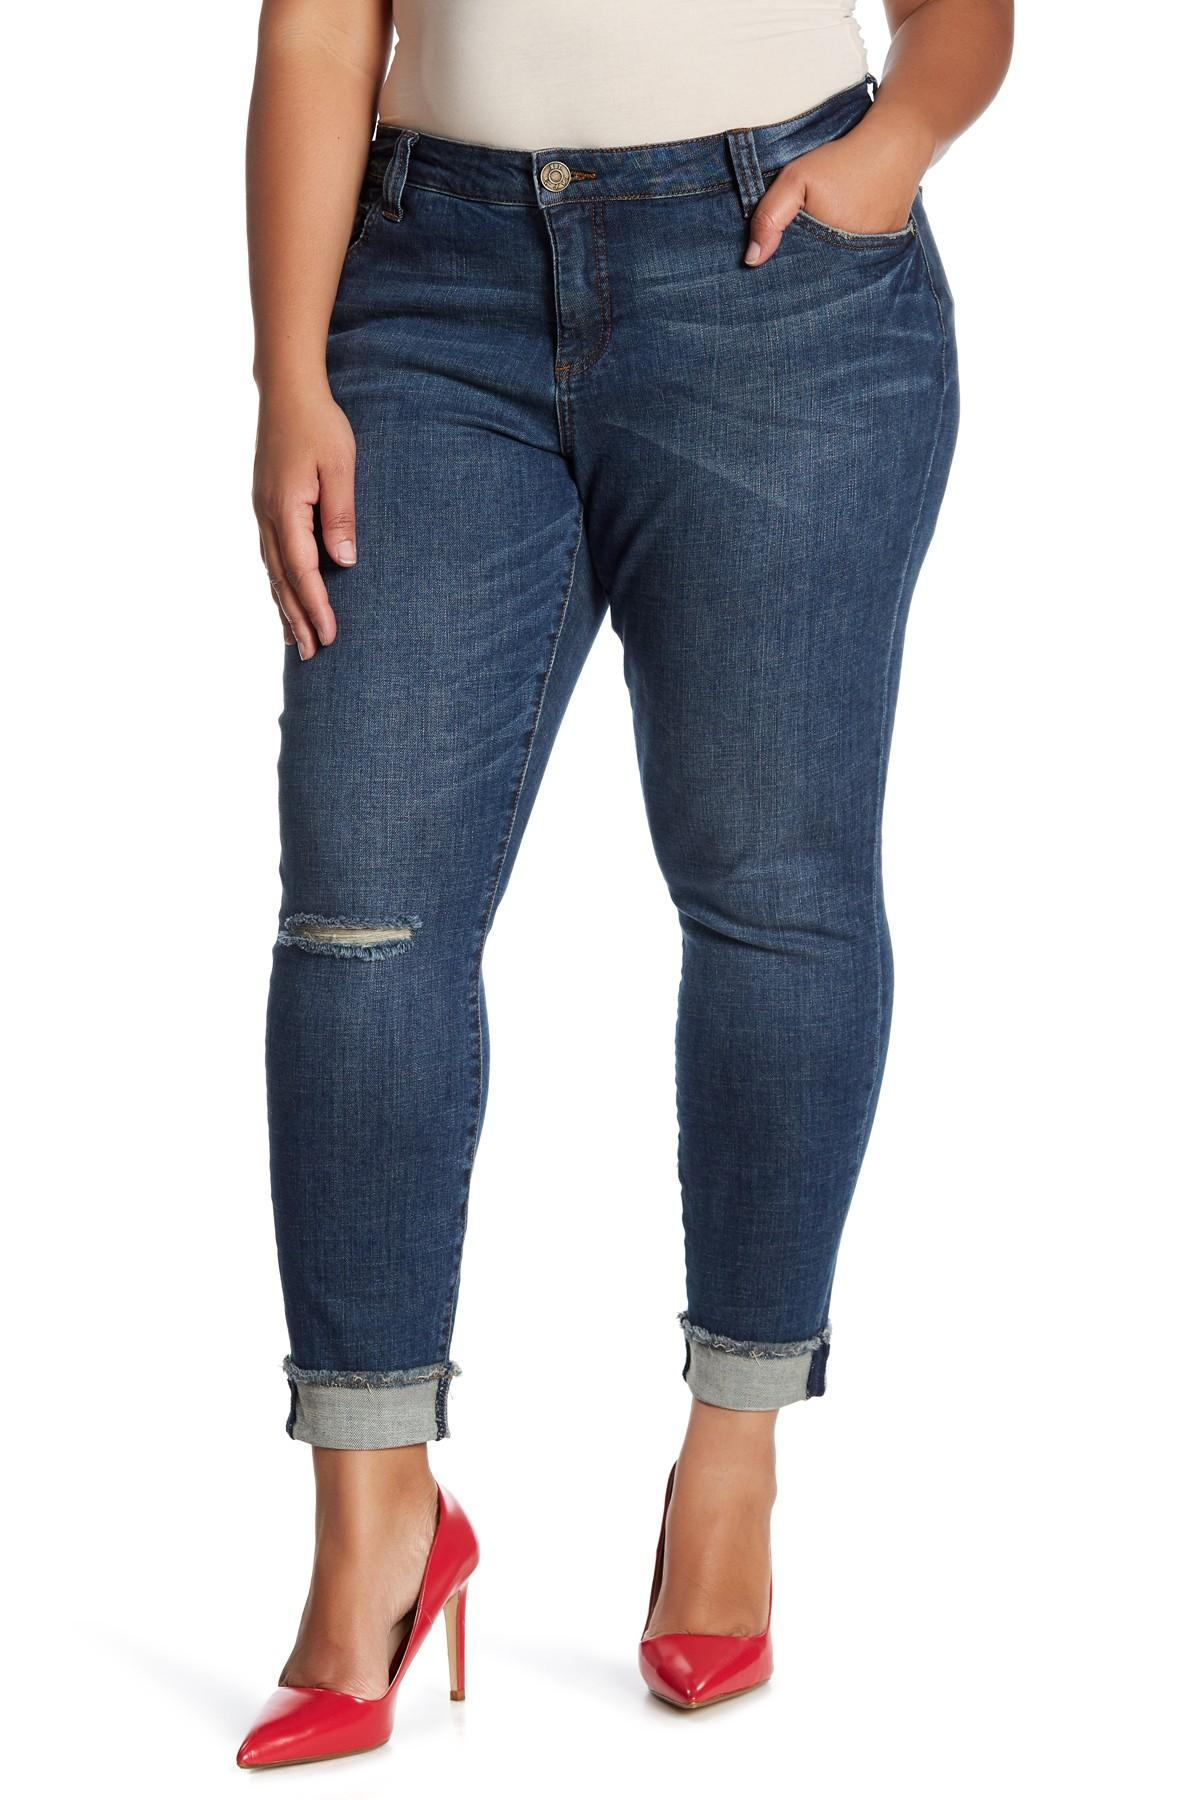 291fc61b1412a Lyst - Kut From The Kloth Asher Straight Leg Jean (plus Size) in Blue